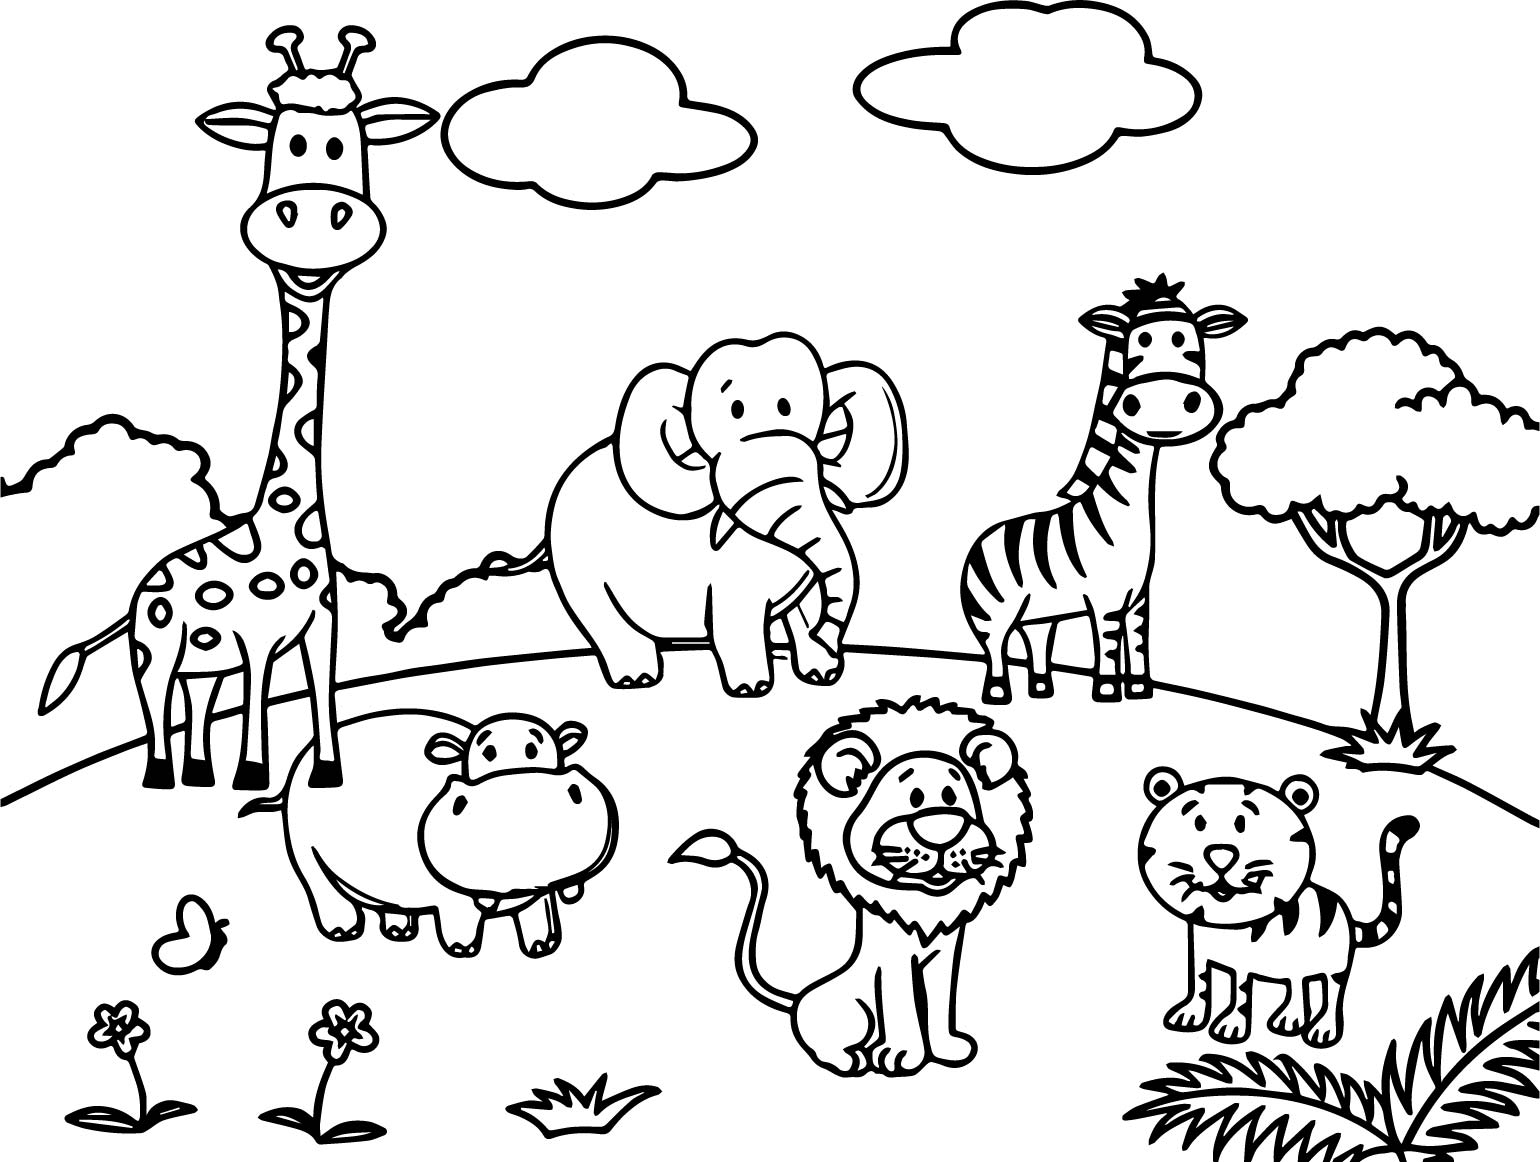 cartoon animals all coloring page - All Coloring Pages